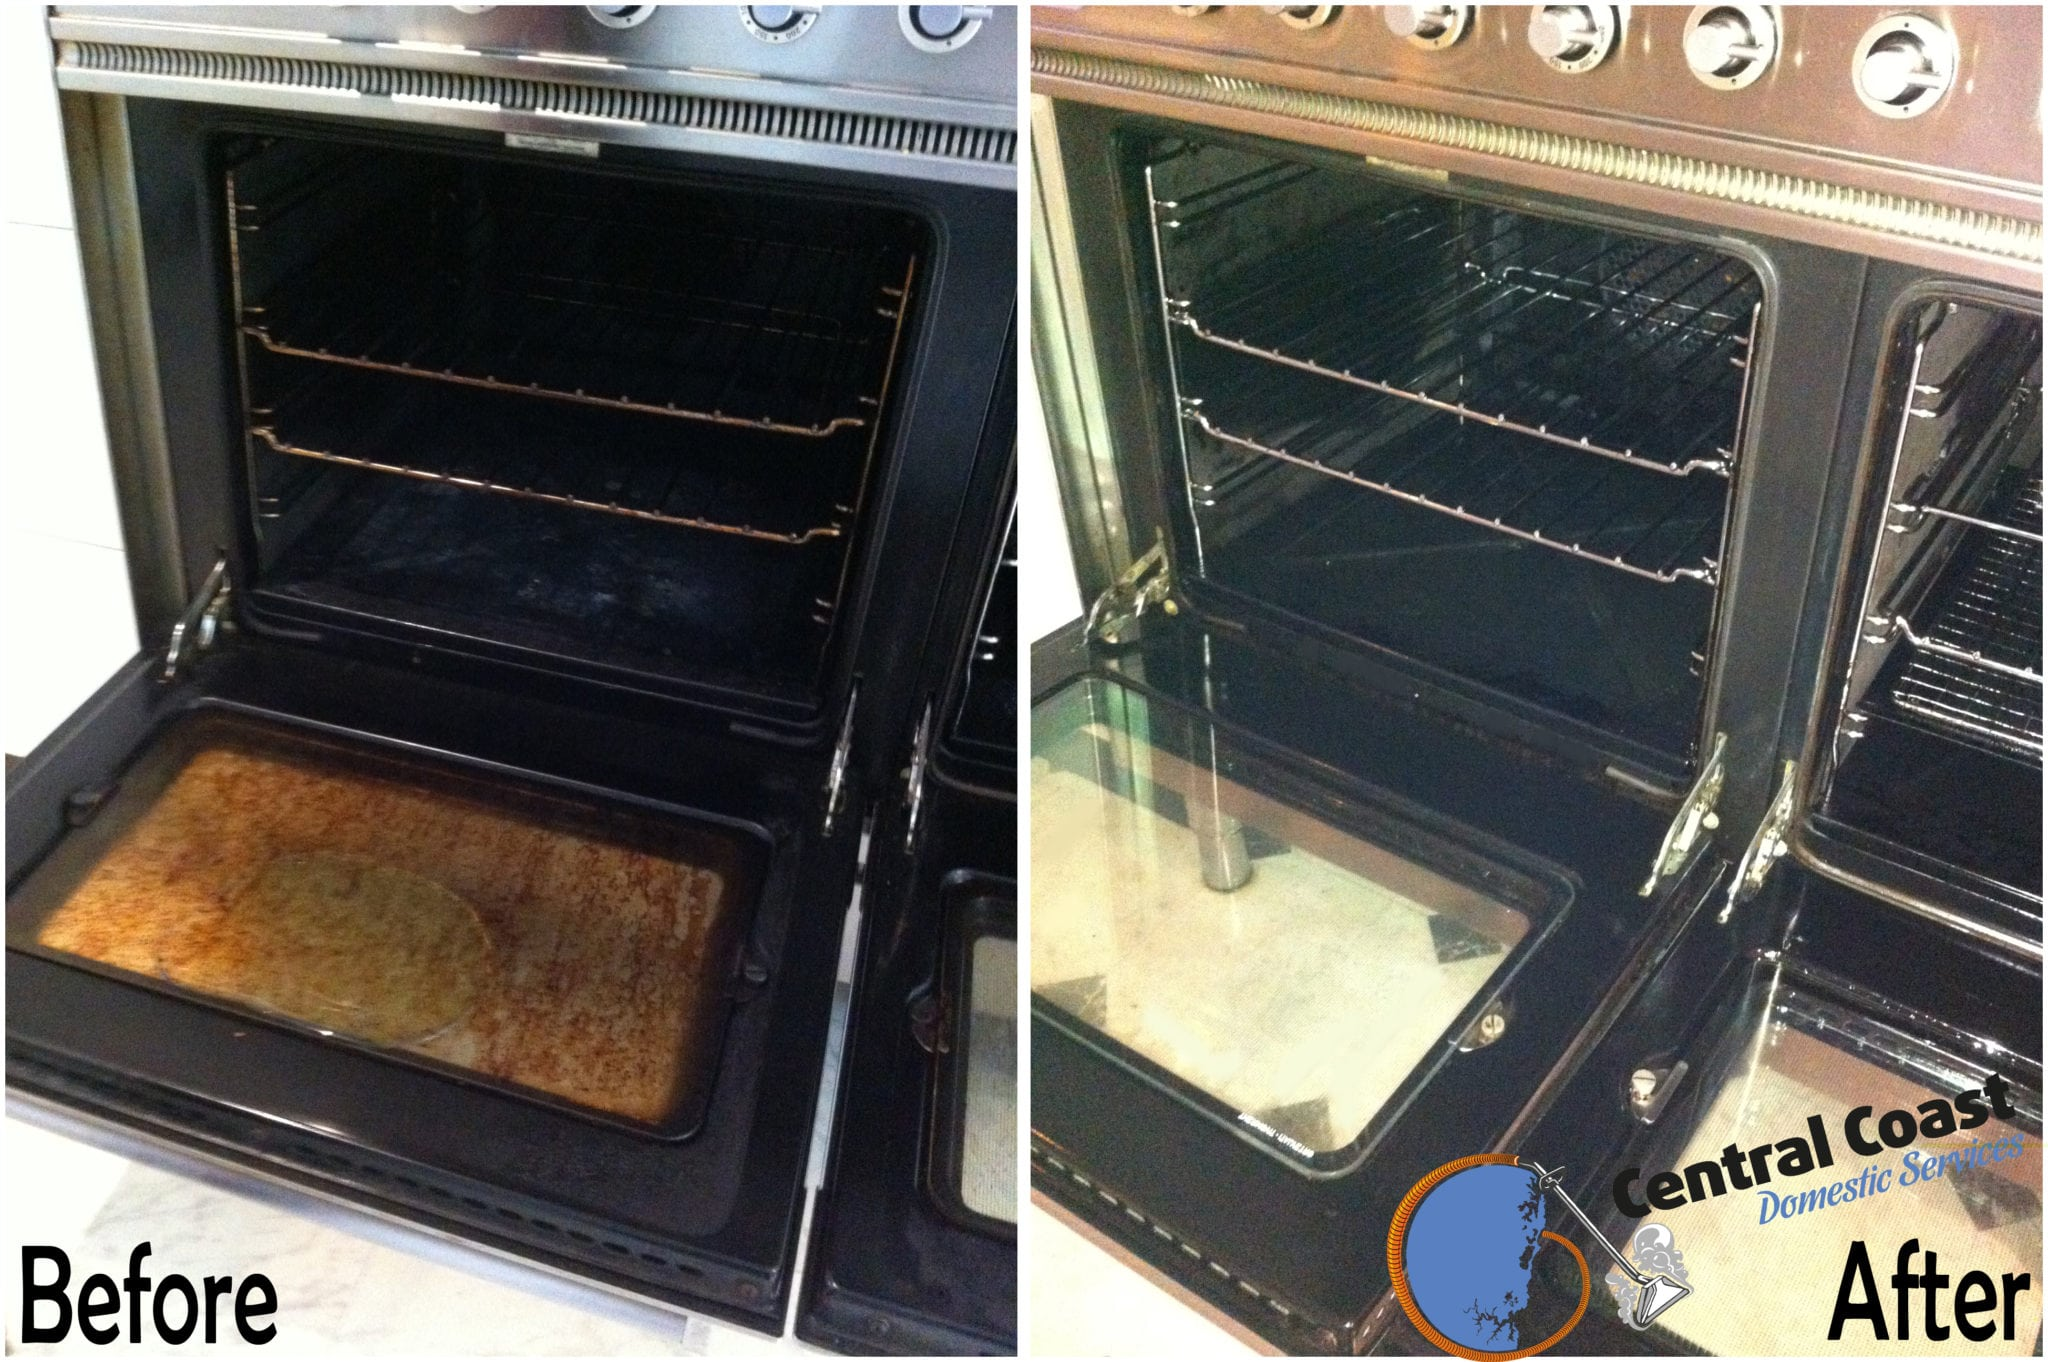 Oven Clean Before & After